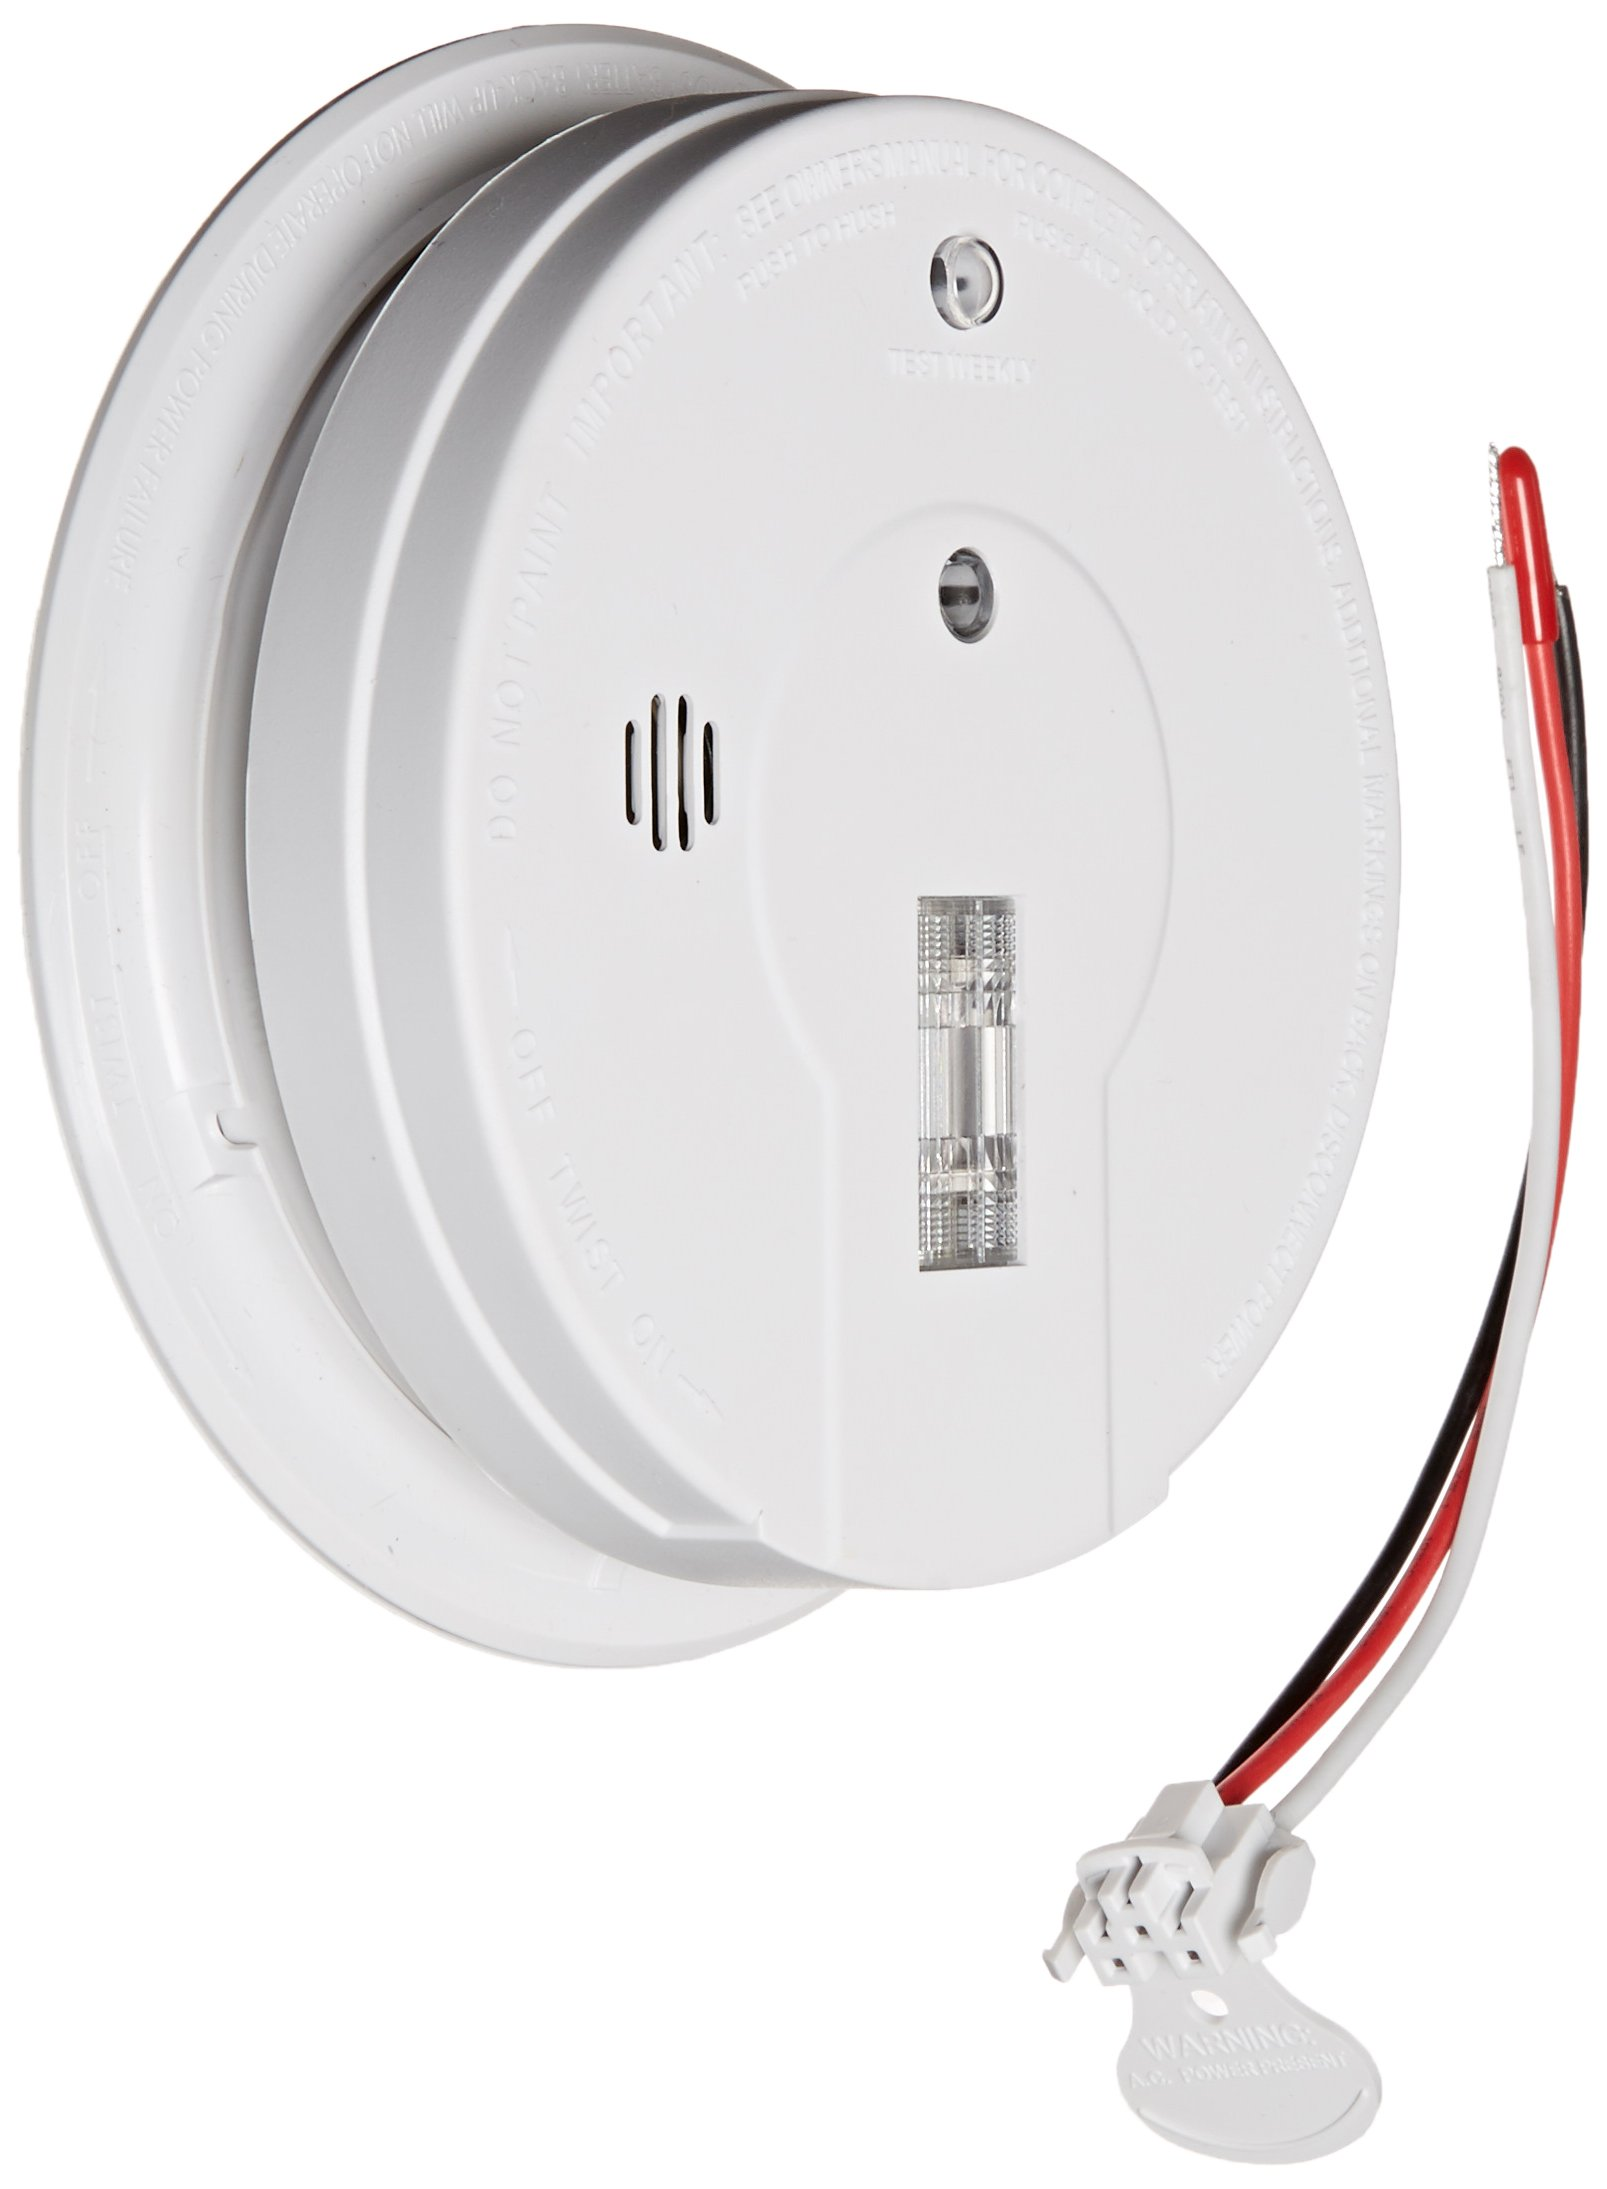 Kidde 408-21006379 Firex i12080 Hardwire Smoke Alarm with Exit Light and Battery Backup